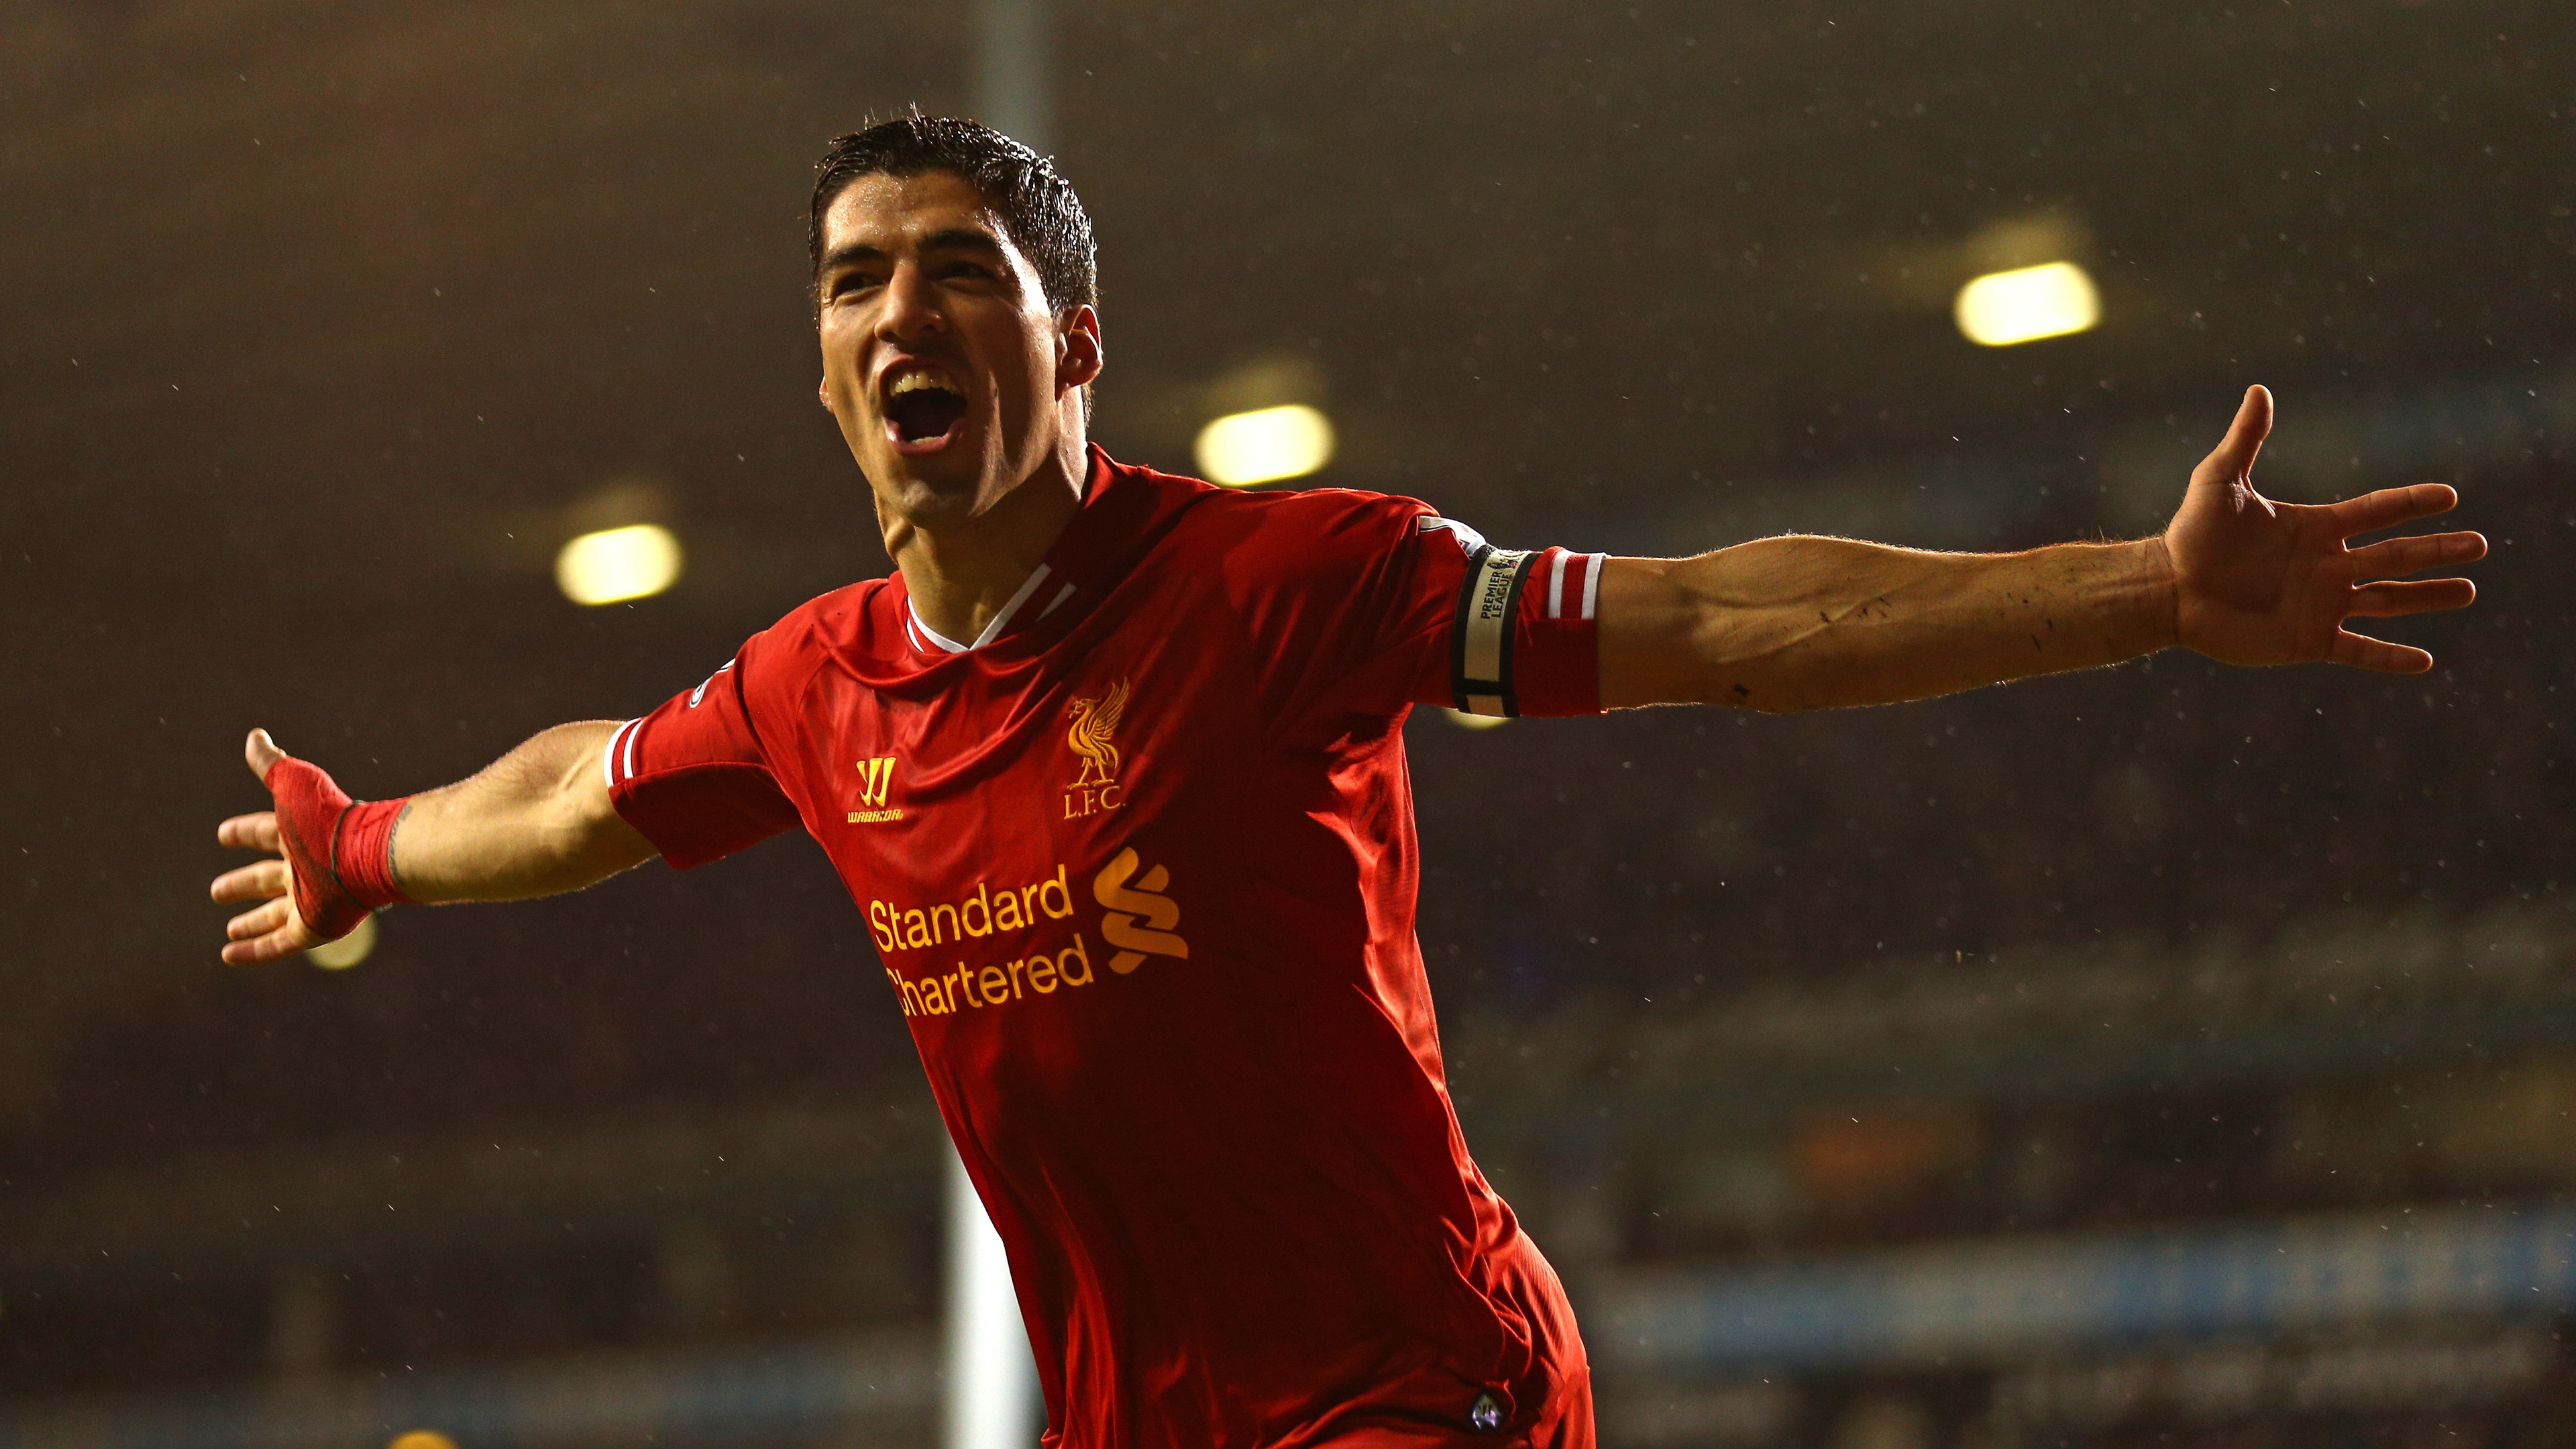 luis suarez 1538787008 - Luis Suarez - sports wallpapers, male celebrities wallpapers, luis suarez wallpapers, hd-wallpapers, football wallpapers, fifa world cup russia wallpapers, boys wallpapers, 4k-wallpapers